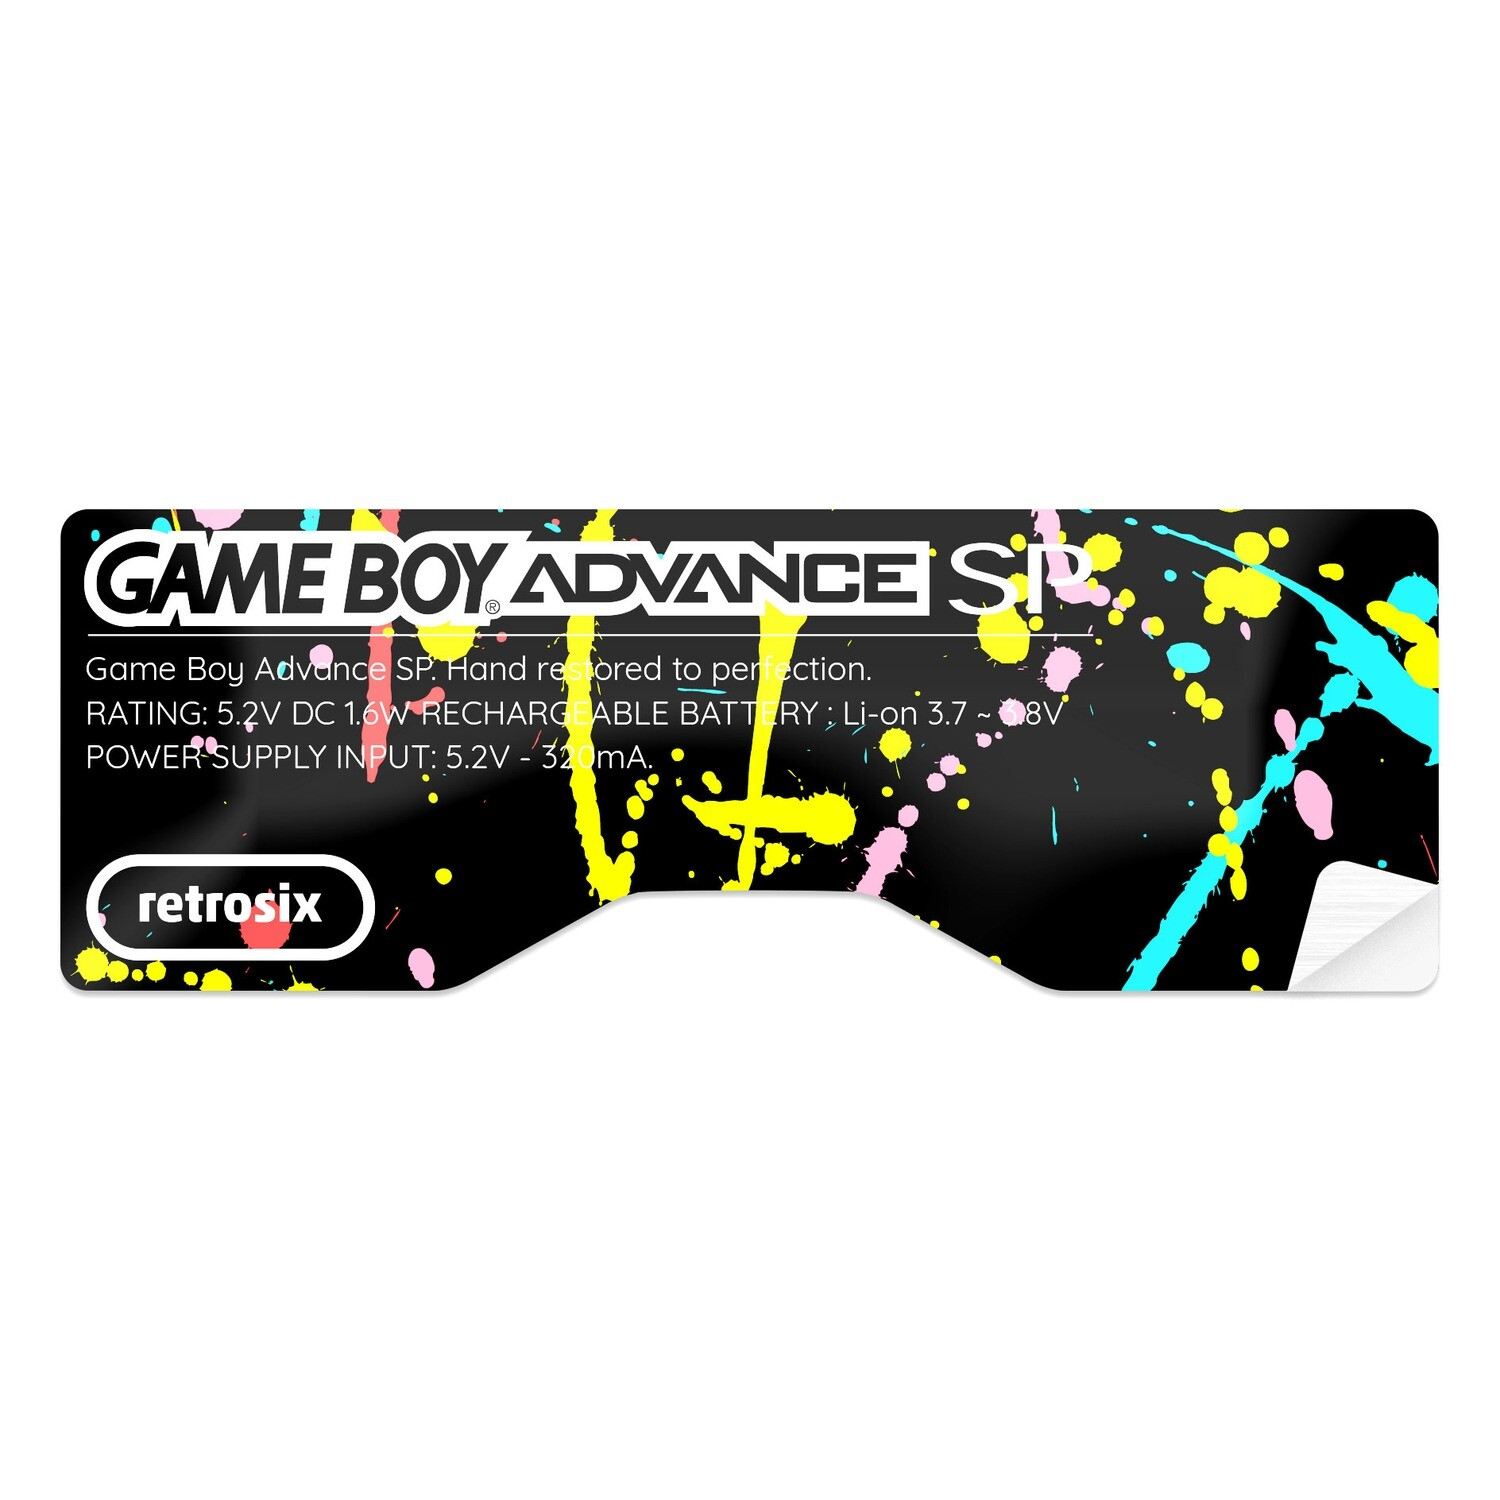 Game Boy Advance SP Sticker (Splash)